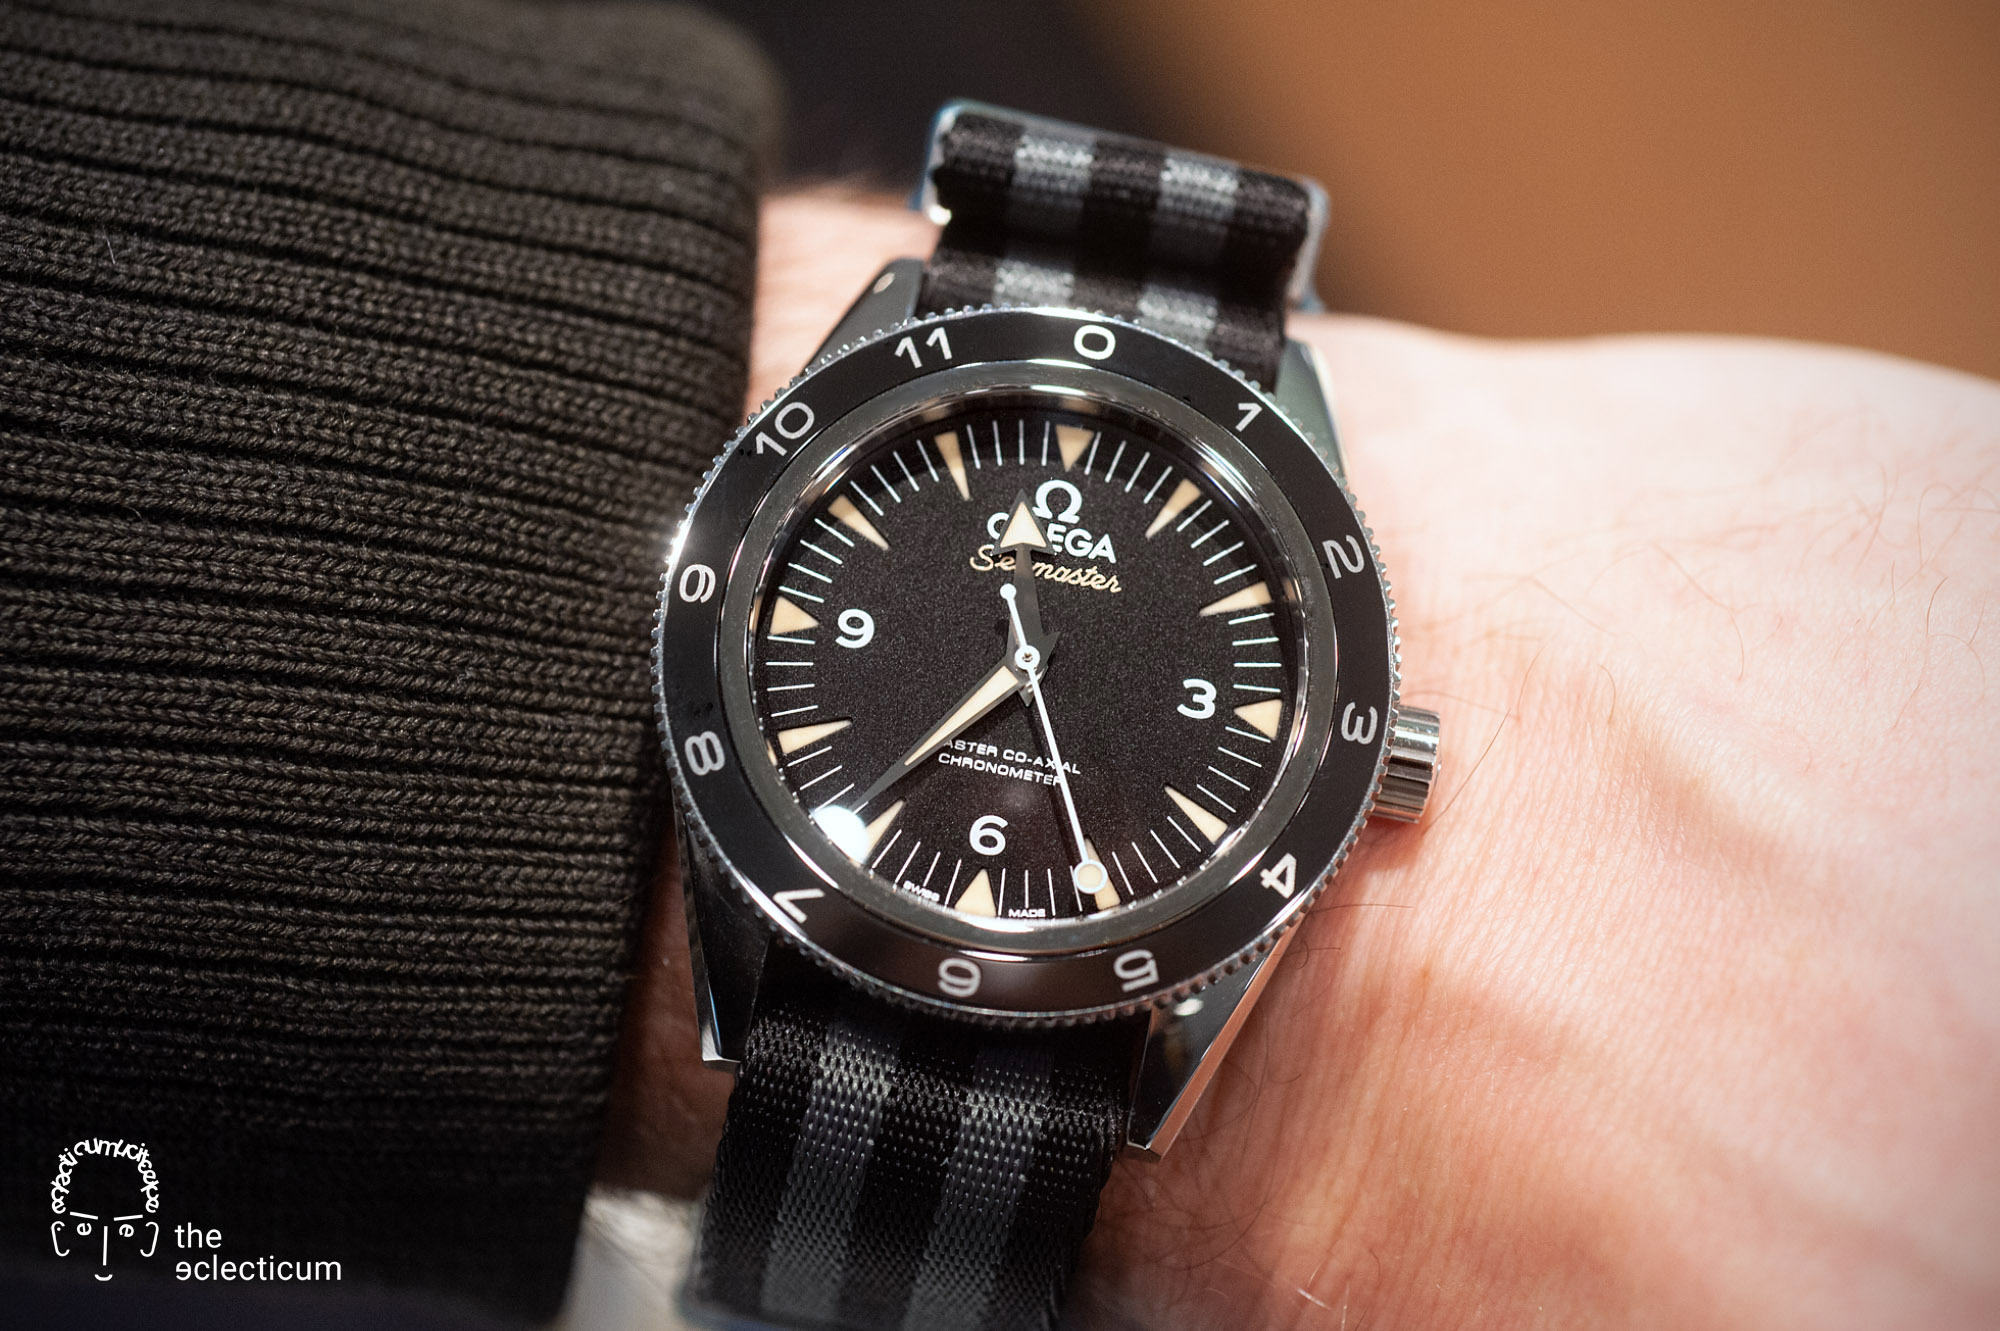 Omega, Seamaster, Seamaster Diver, 300M, Omega 007, Omega James Bond, James Bond, 007, Seamaster Spectre, Seamaster 300M, Omega Seamaster, James Bond 007, 007 Edition, Co‑Axial Master Chronometer, NATO strap, military timepiece, double-0 agents, Bond-Factor